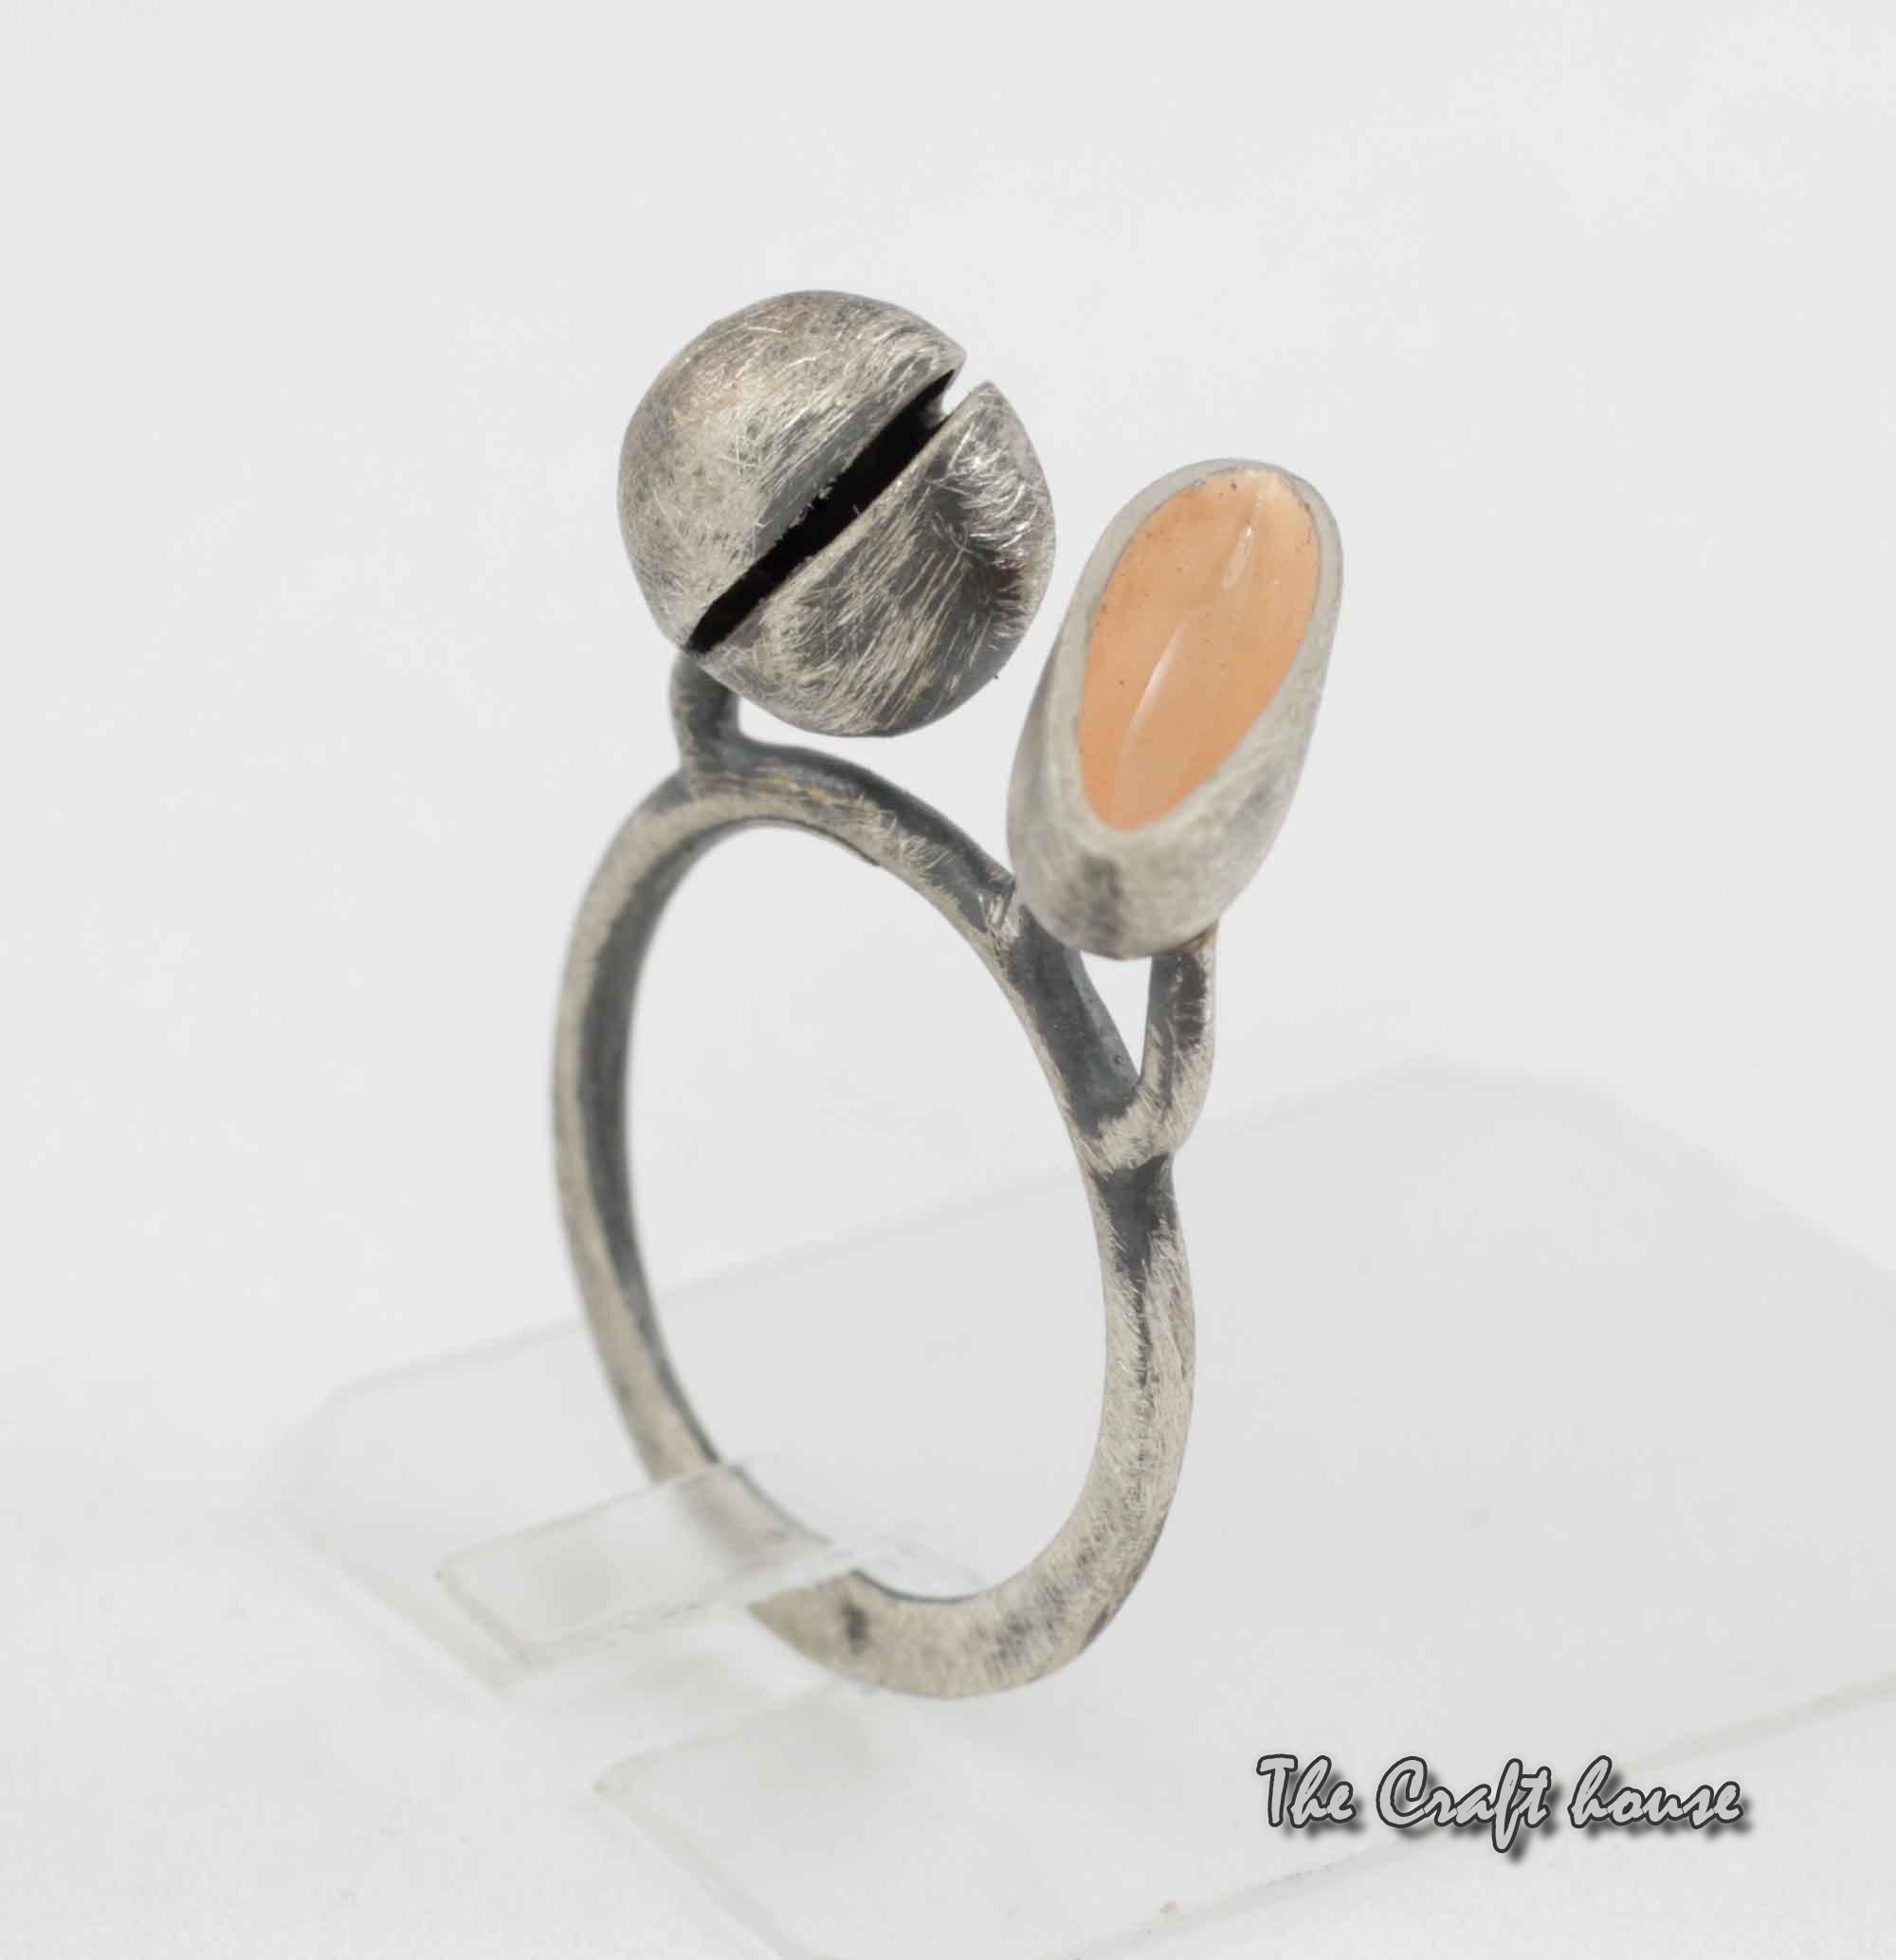 Silver ring with color enamel